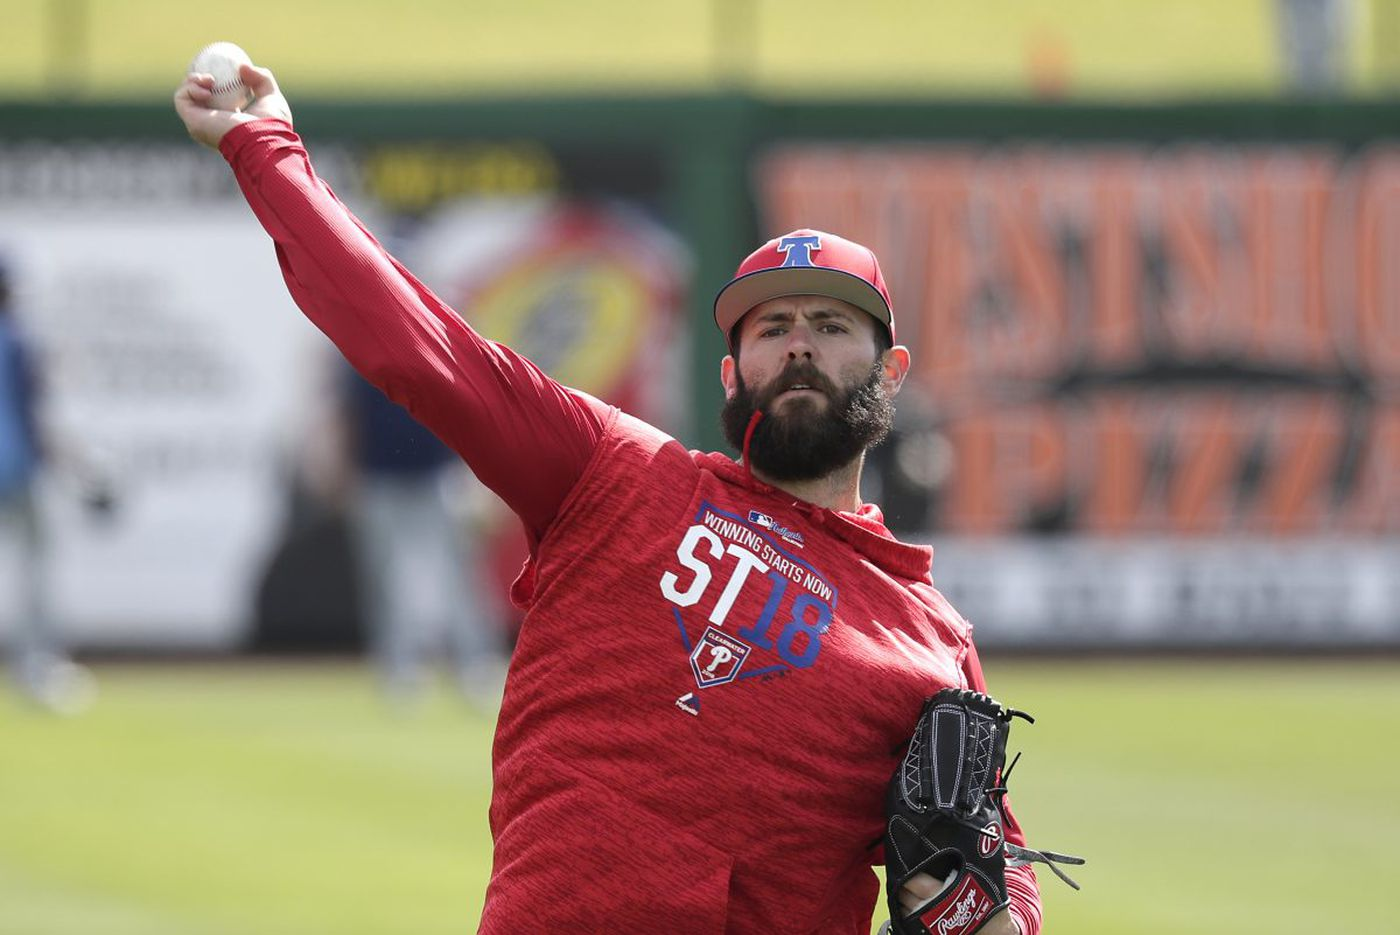 Phillies pitcher Jake Arrieta breaks two bats in simulated game